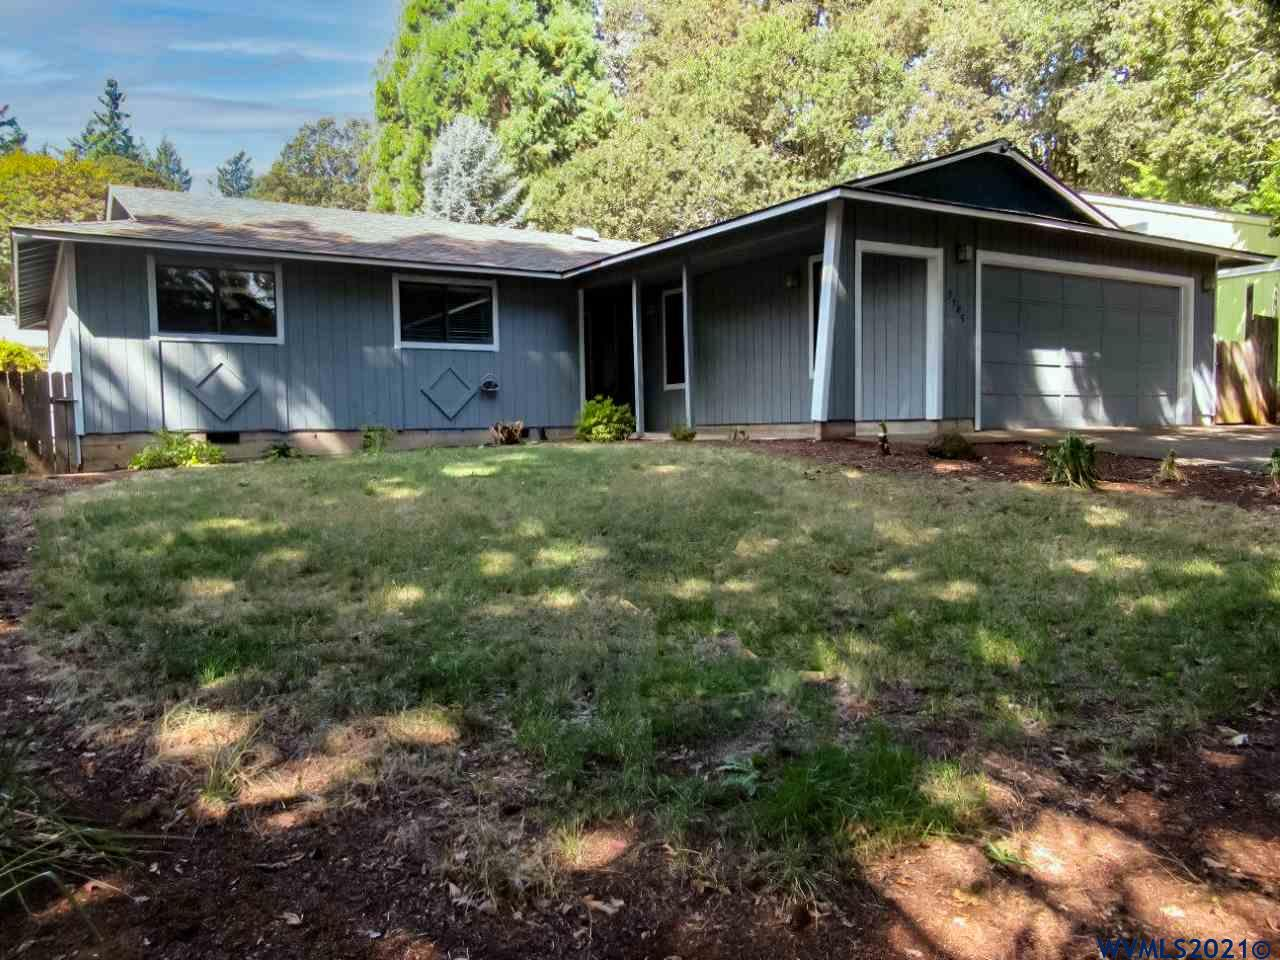 Accepted Offer with Contingencies. Inspected and Back on Market Better than Ever!  Great South Salem location close to Fir Crest Park.  Safe, private lane with low traffic.  Nicely updated and move-in ready with additional possibilities for new owner.  Well maintained home including New roof in 2018, New gutters, Exterior Paint, and most Windows recently updated.  Great layout - Kitchen & dining room open to family room with cozy corner fireplace. Second Living Room!  Large master bedroom with ensuite and double closets.  Welcome Home!